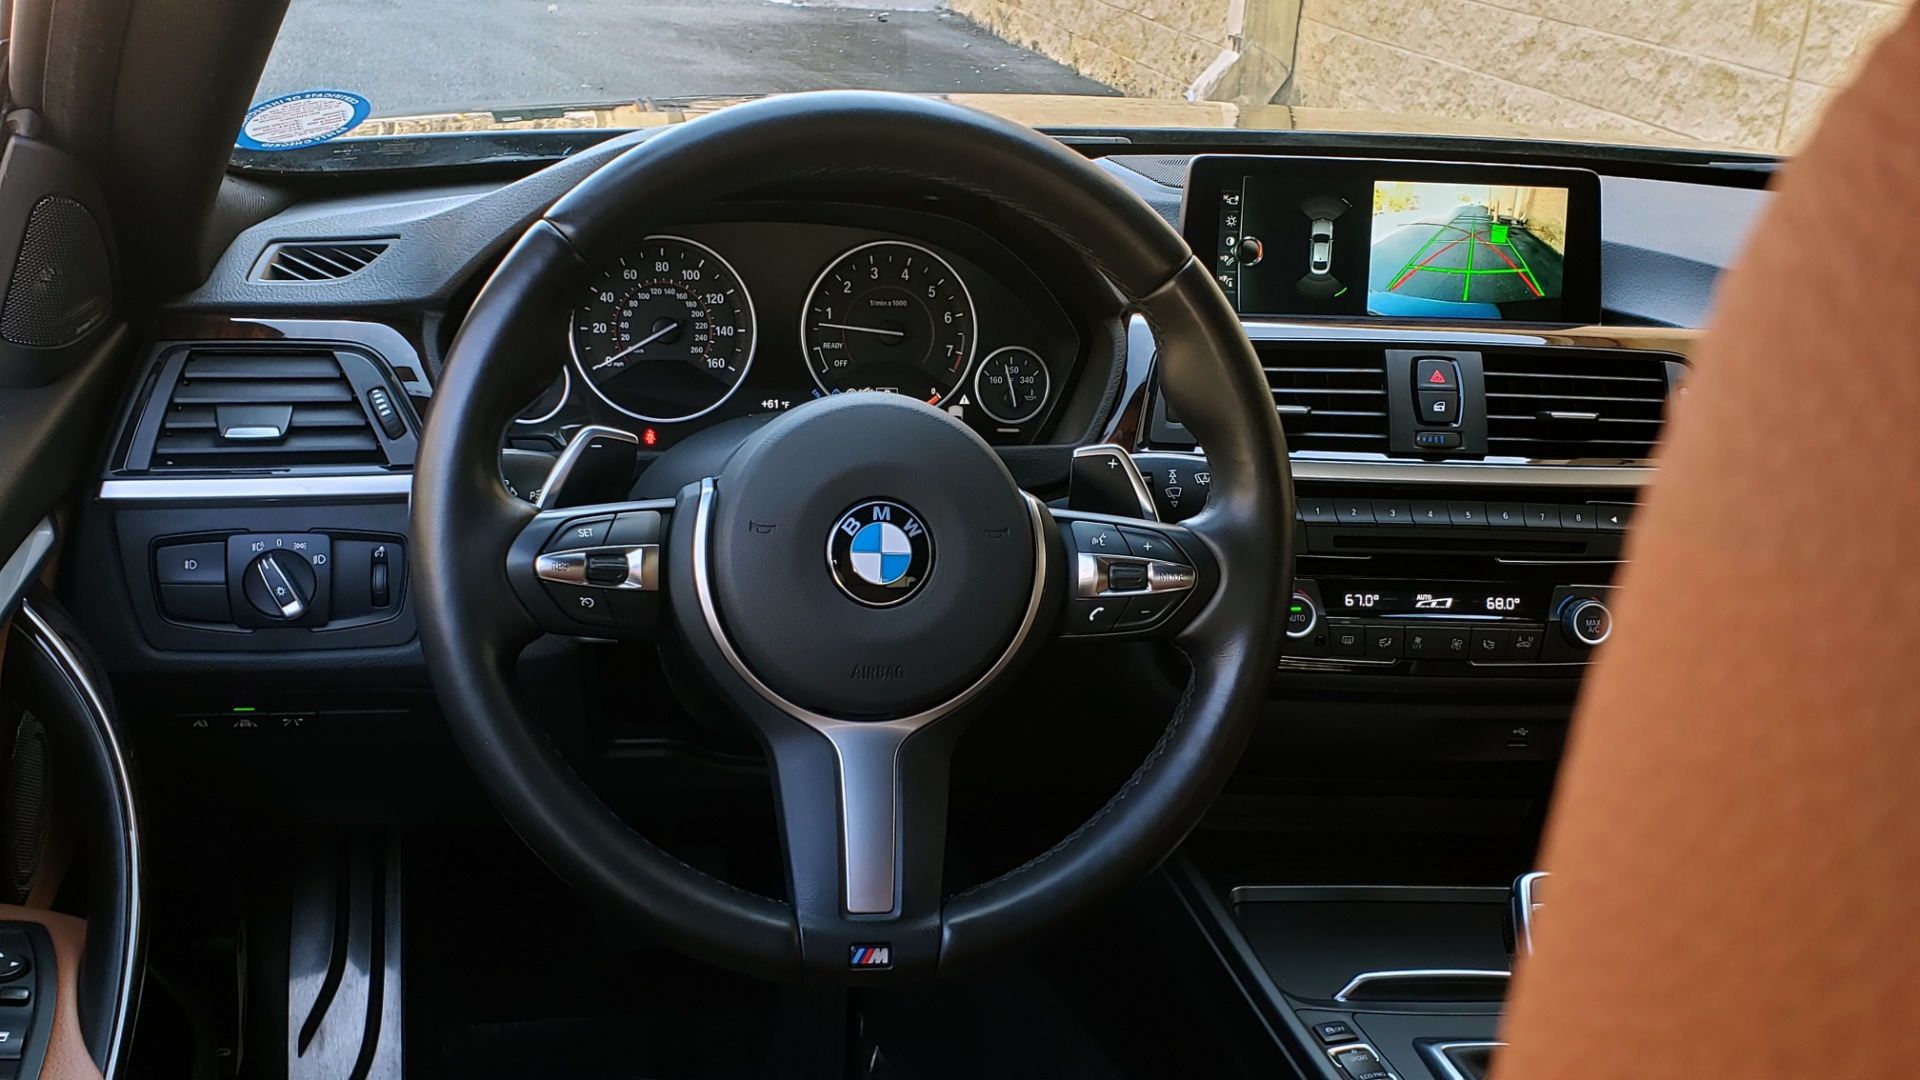 Used 2017 BMW 4 SERIES 440i XDRIVE M-SPORT / TECH / CLD WTHR / DRVR ASST PLUS / LIGHTING for sale Sold at Formula Imports in Charlotte NC 28227 40